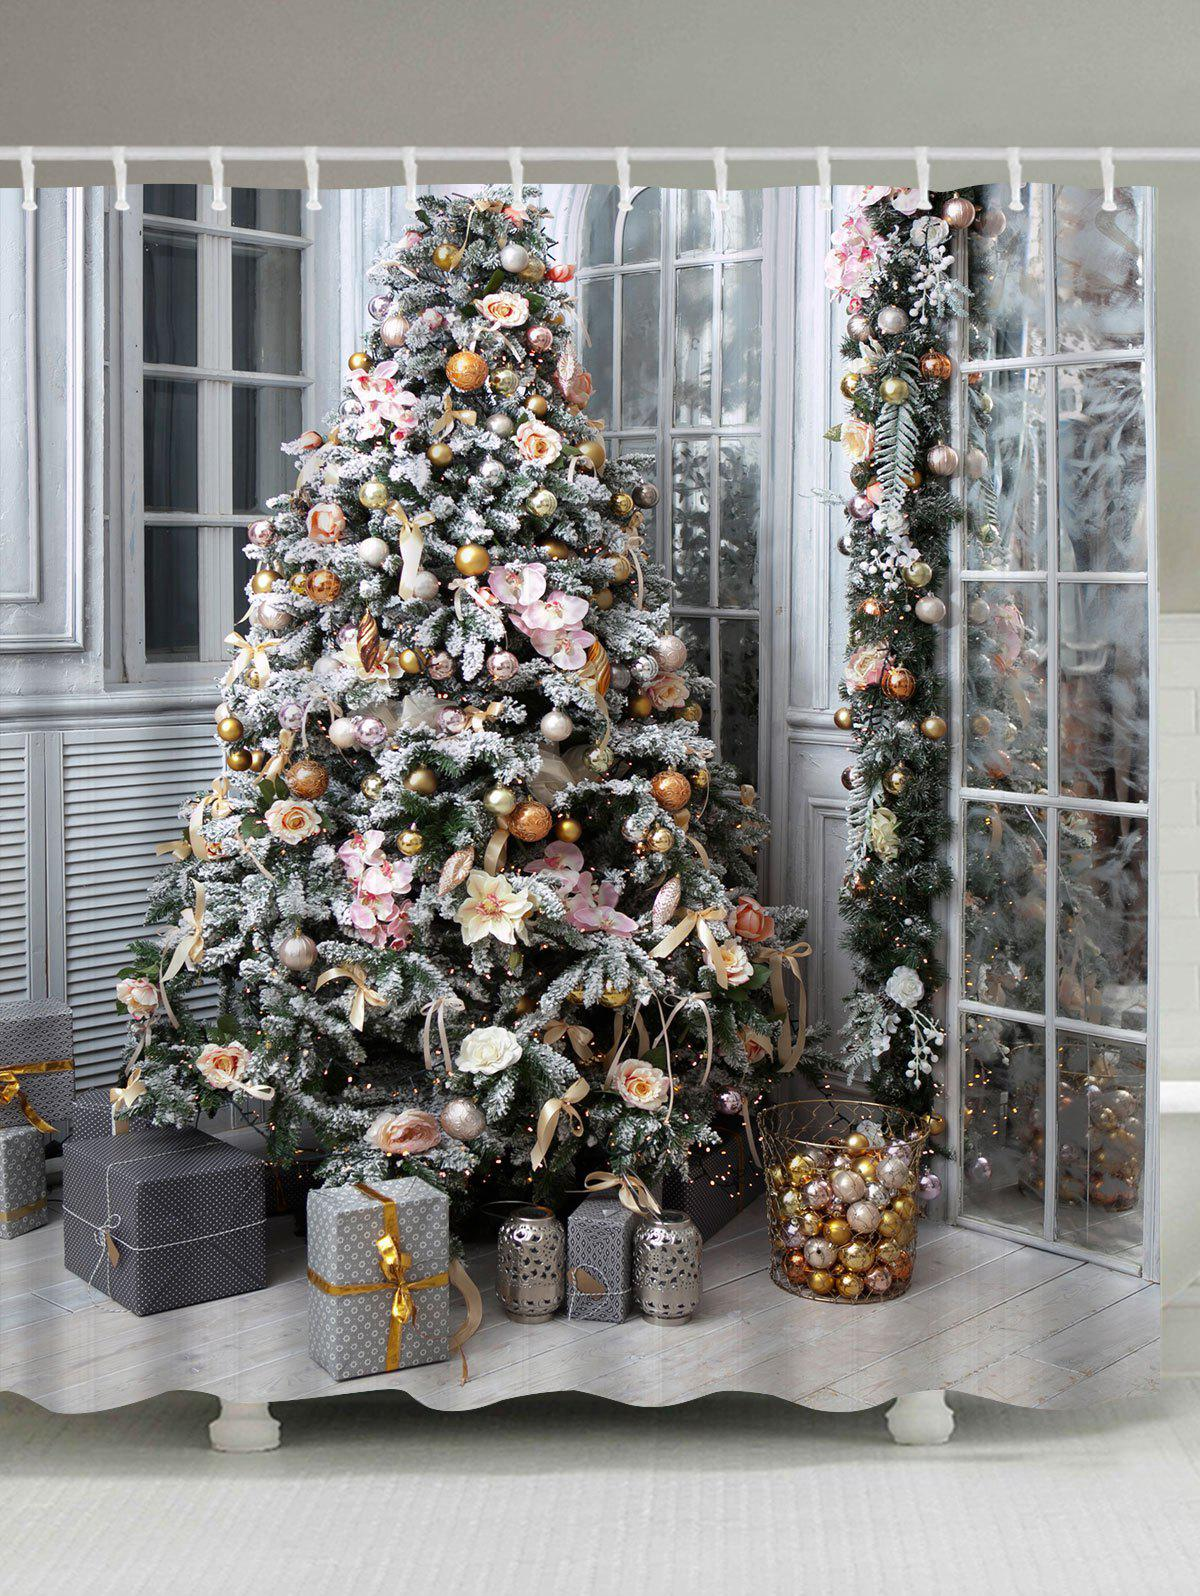 Christmas Tree Gift Printed Waterproof Bath CurtainHOME<br><br>Size: W71 INCH * L79 INCH; Color: COLORMIX; Products Type: Shower Curtains; Materials: Polyester; Pattern: Christmas Tree,Gift; Style: Festival; Number of Hook Holes: W59 inch*L71 inch: 10; W71 inch*L71 inch: 12; W71 inch*L79 inch: 12; Package Contents: 1 x Shower Curtain 1 x Hooks (Set);